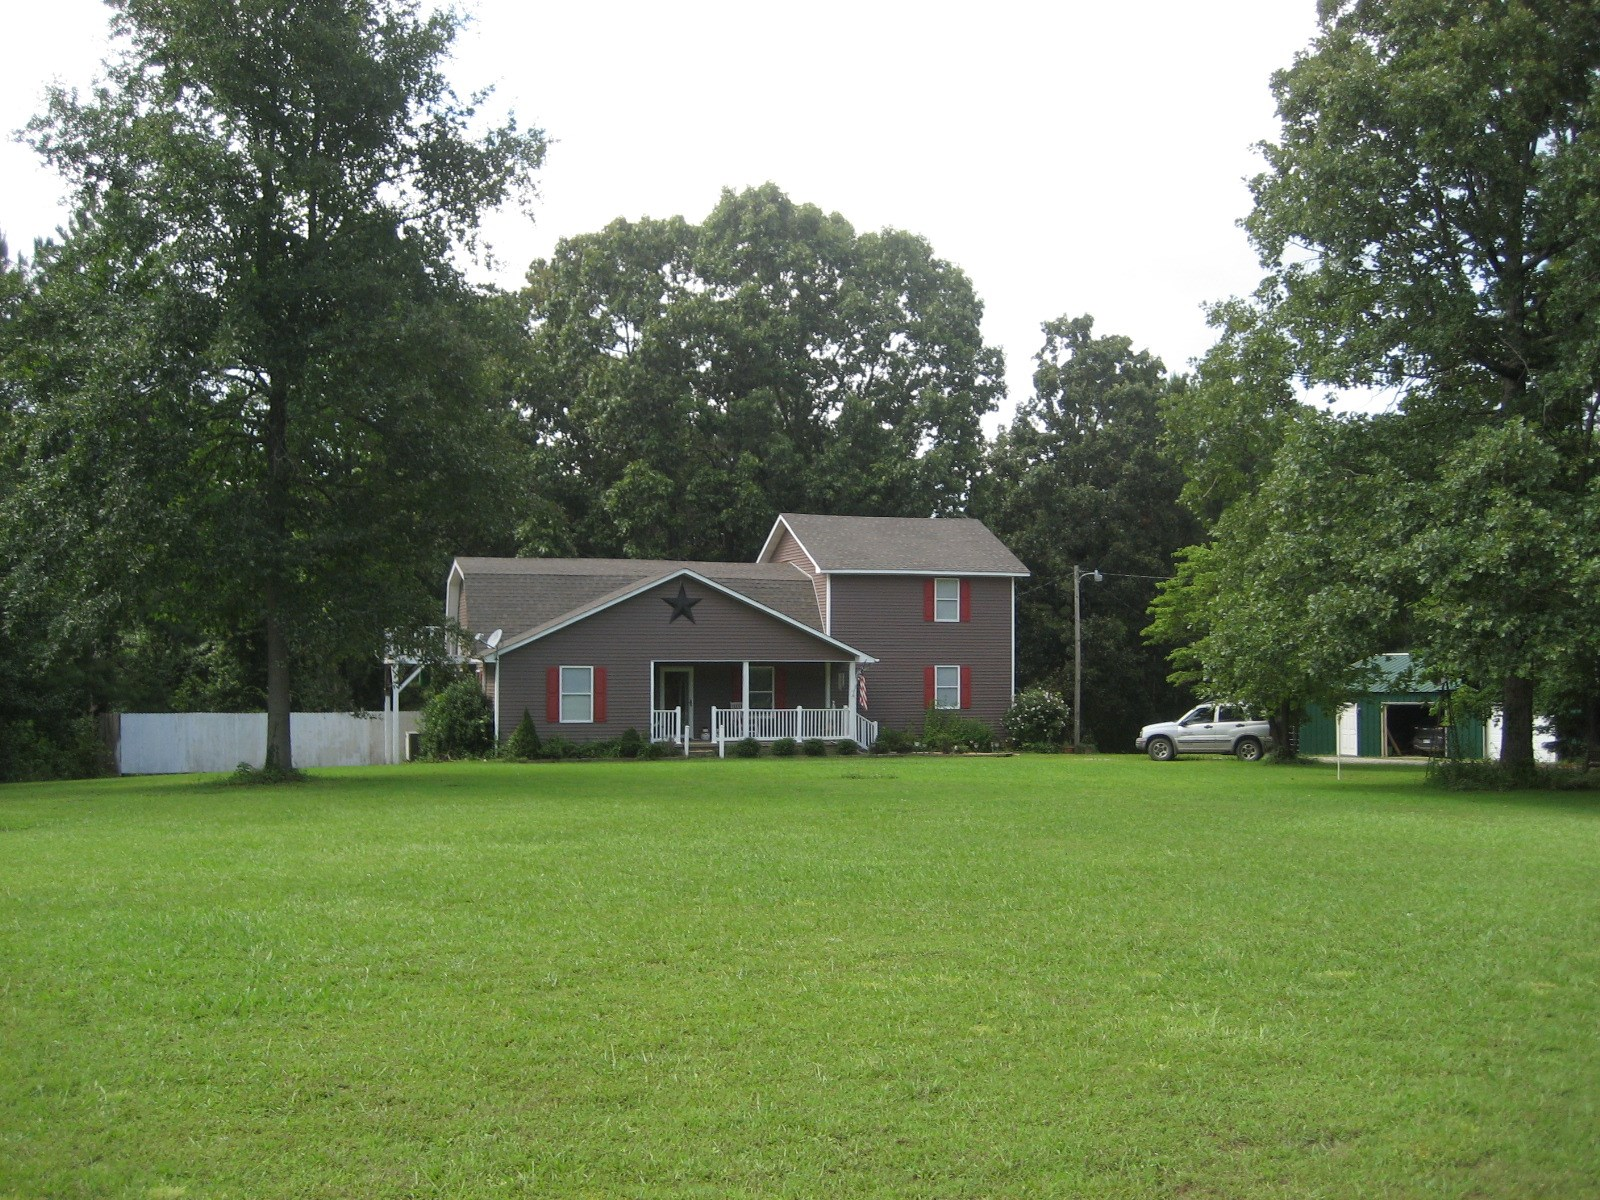 2 STORY COUNTRY HOME FOR SALE IN MCNAIRY COUNTY TN